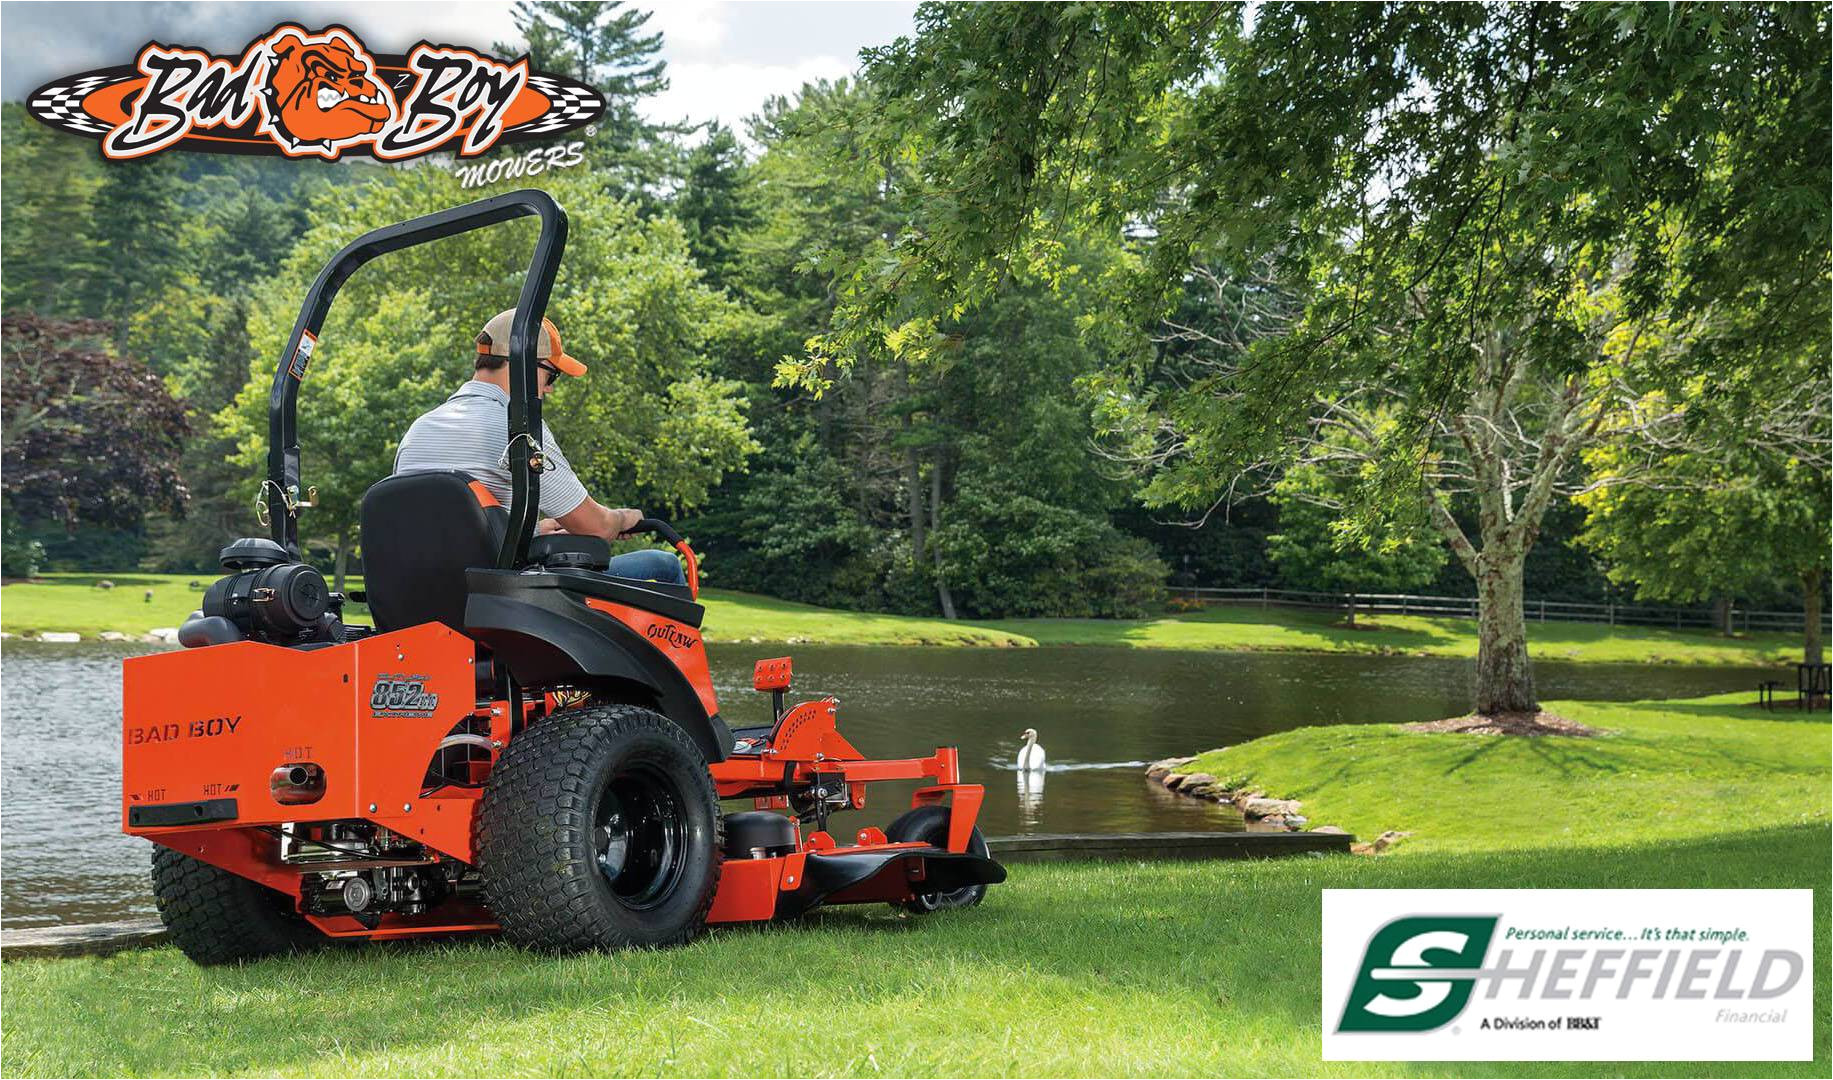 bad boy mowers finance offers